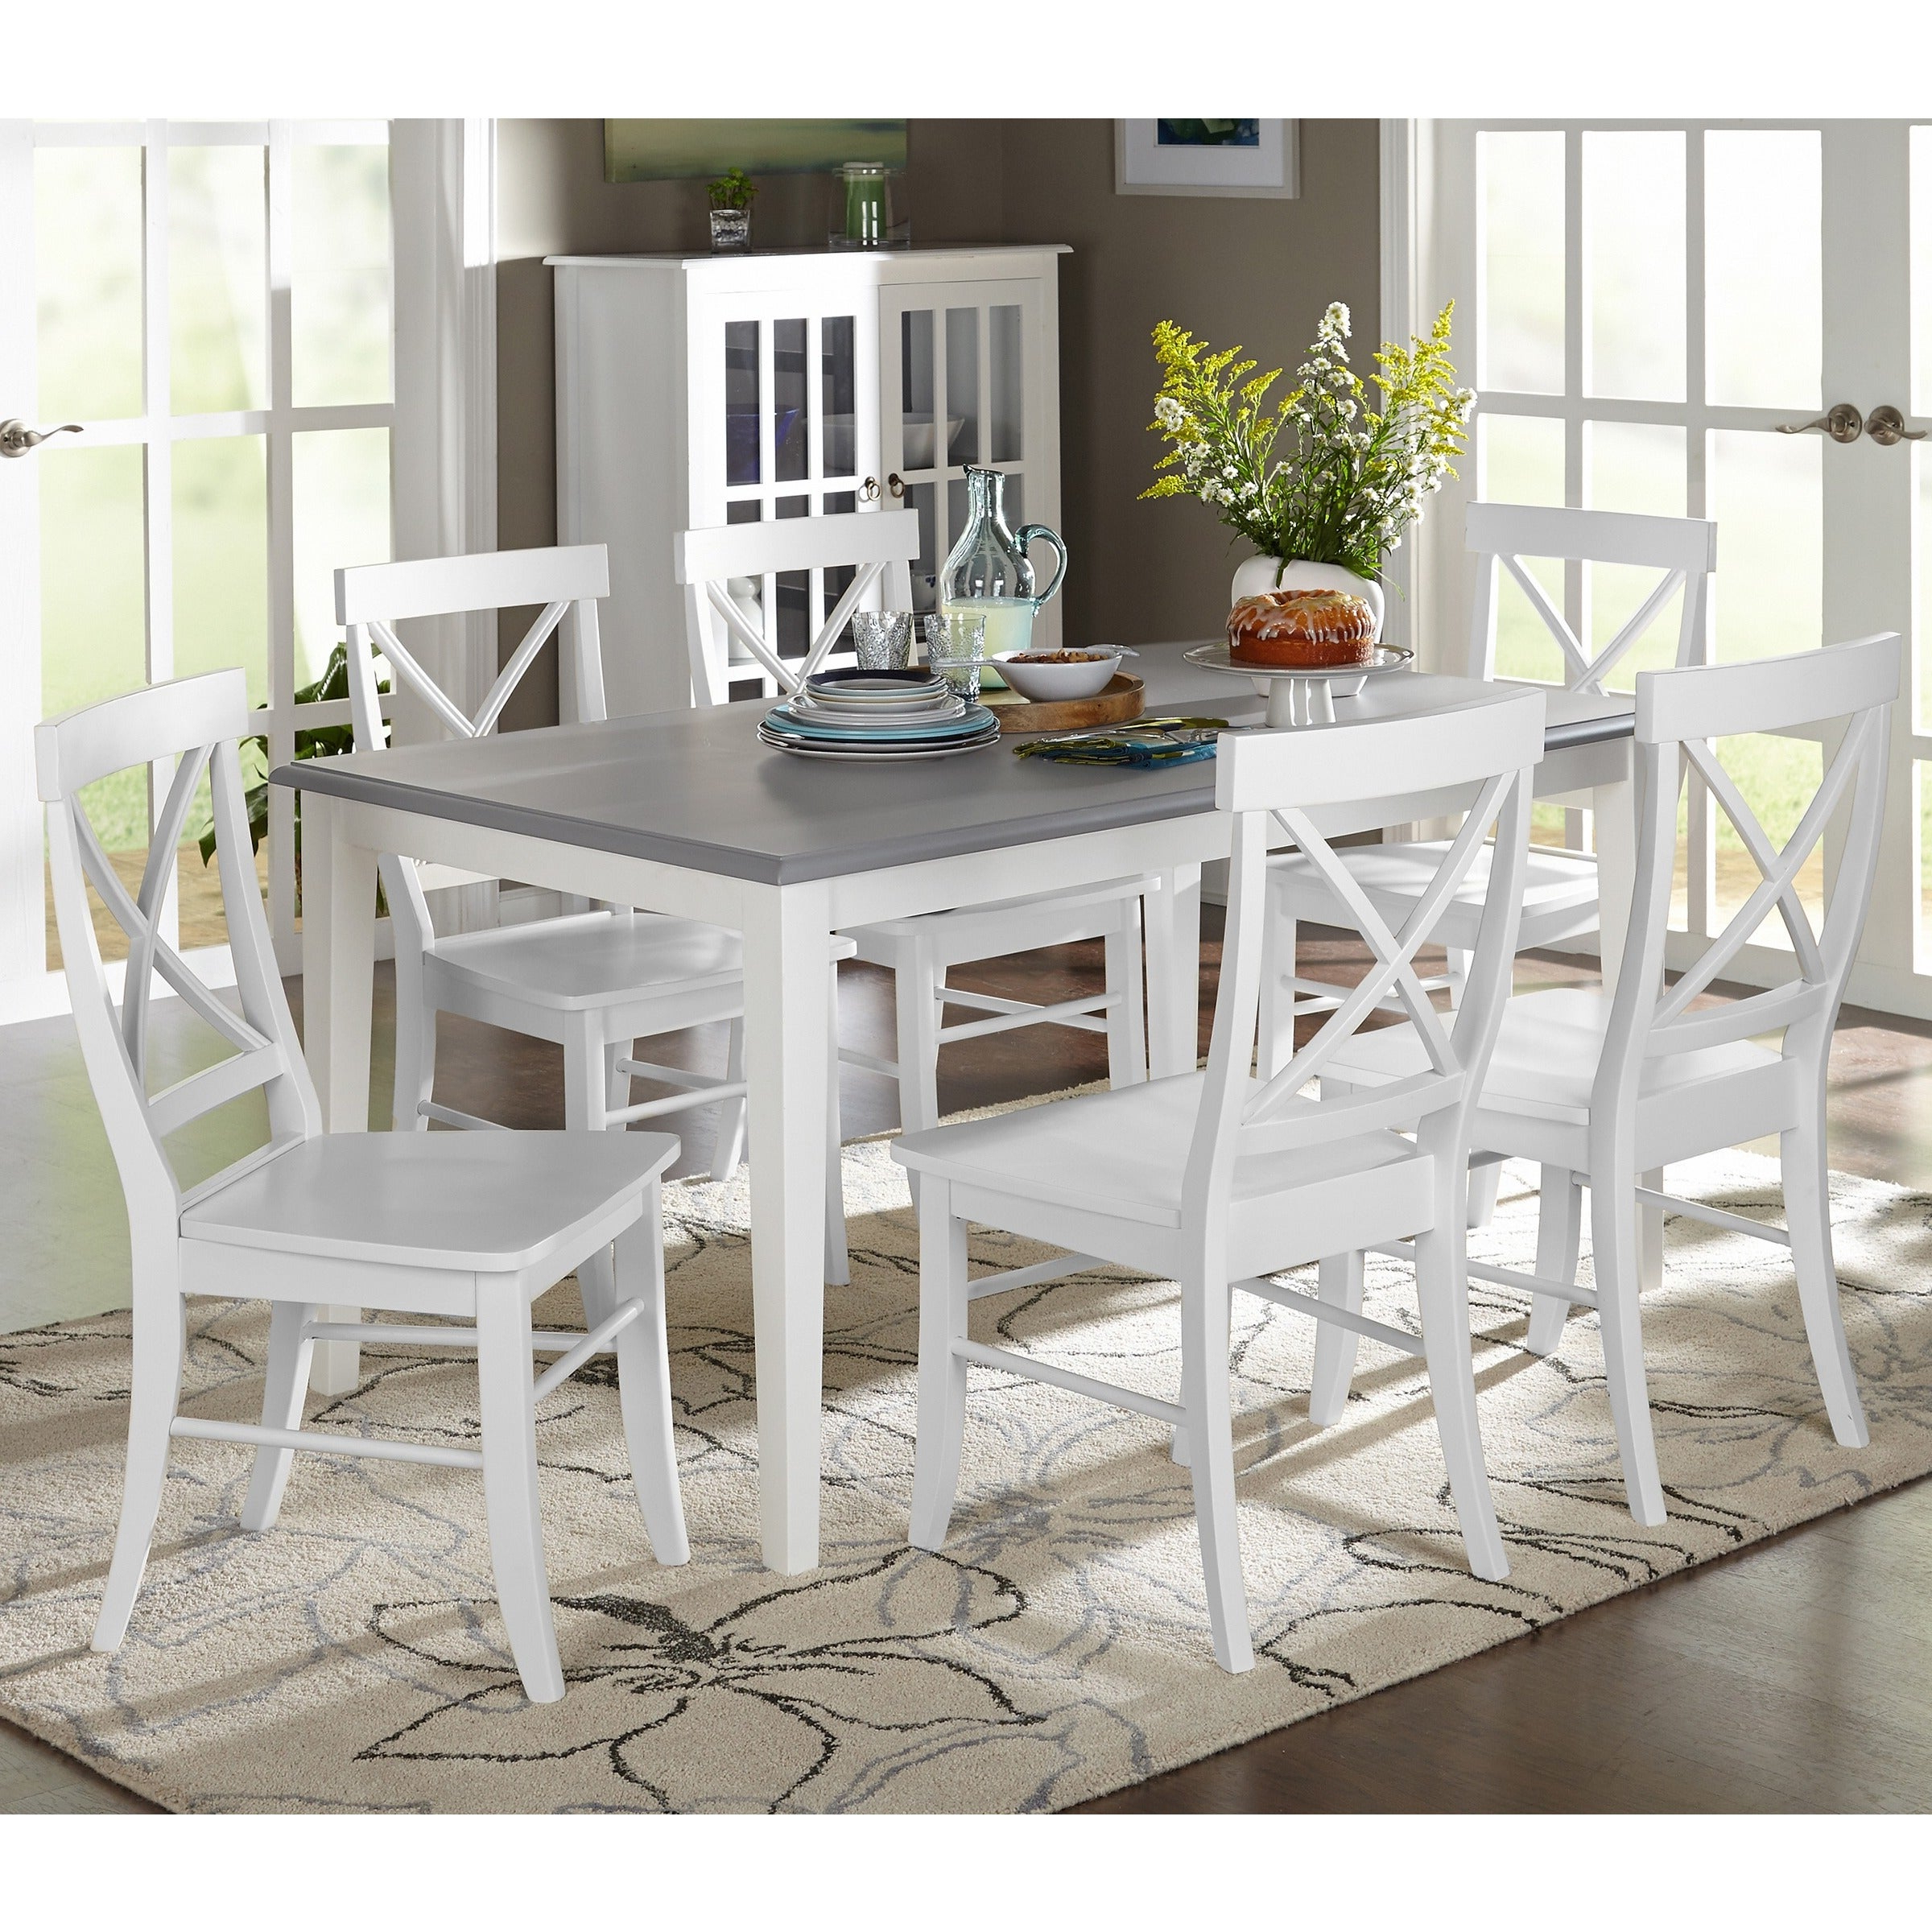 Autberry 5 Piece Dining Sets For Preferred Buy 7 Piece Sets Kitchen & Dining Room Sets Online At Overstock (View 3 of 20)